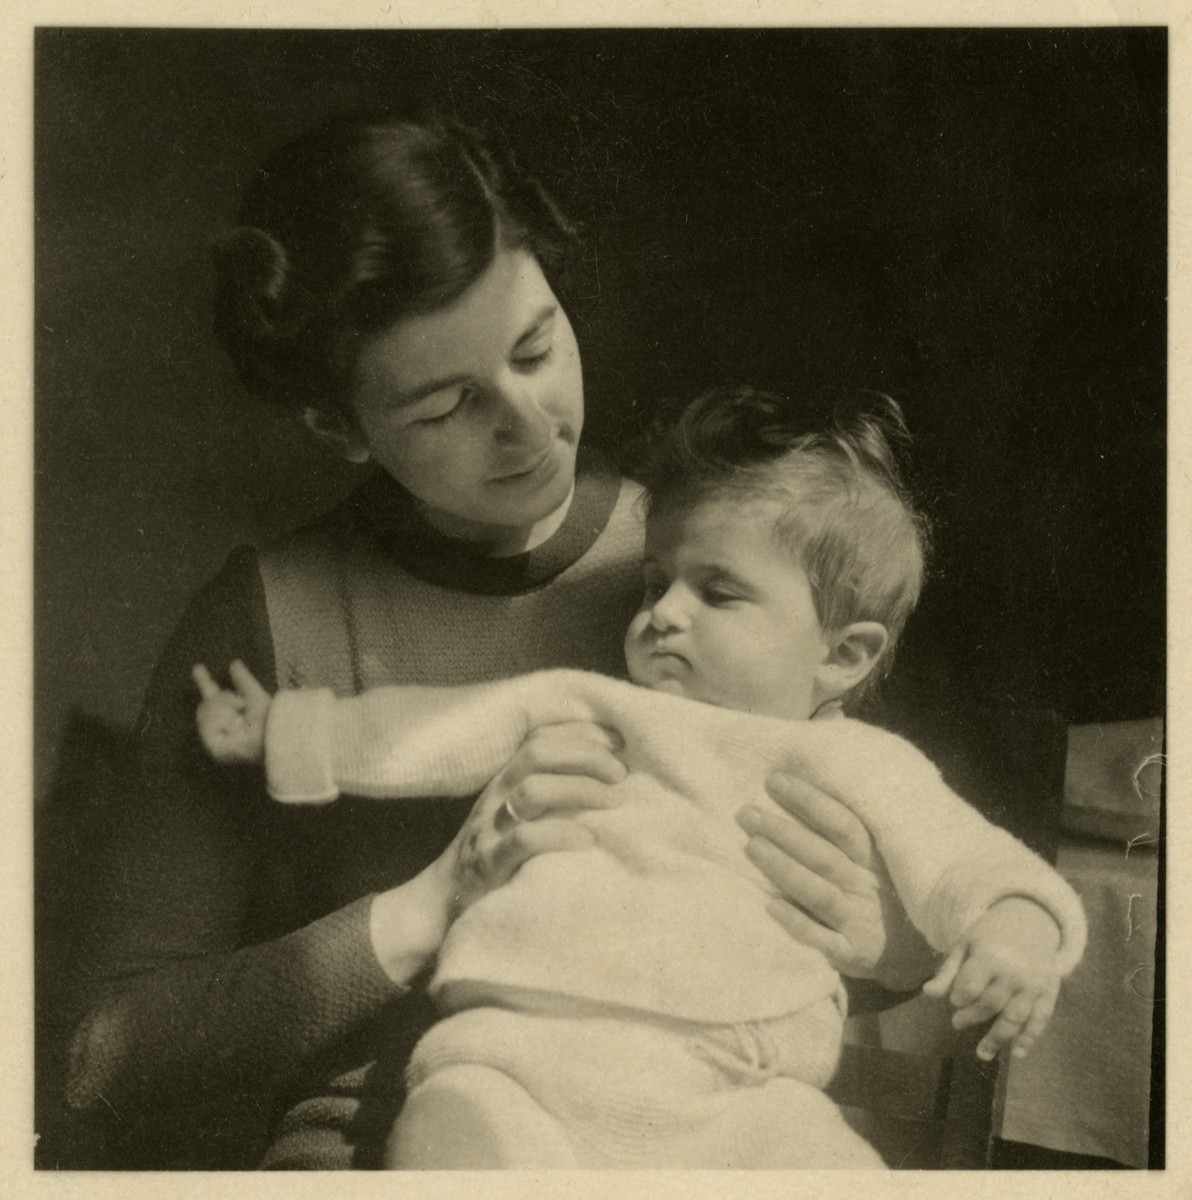 Edith Heller holds her baby daughter, Ruth in their home in Vienna.